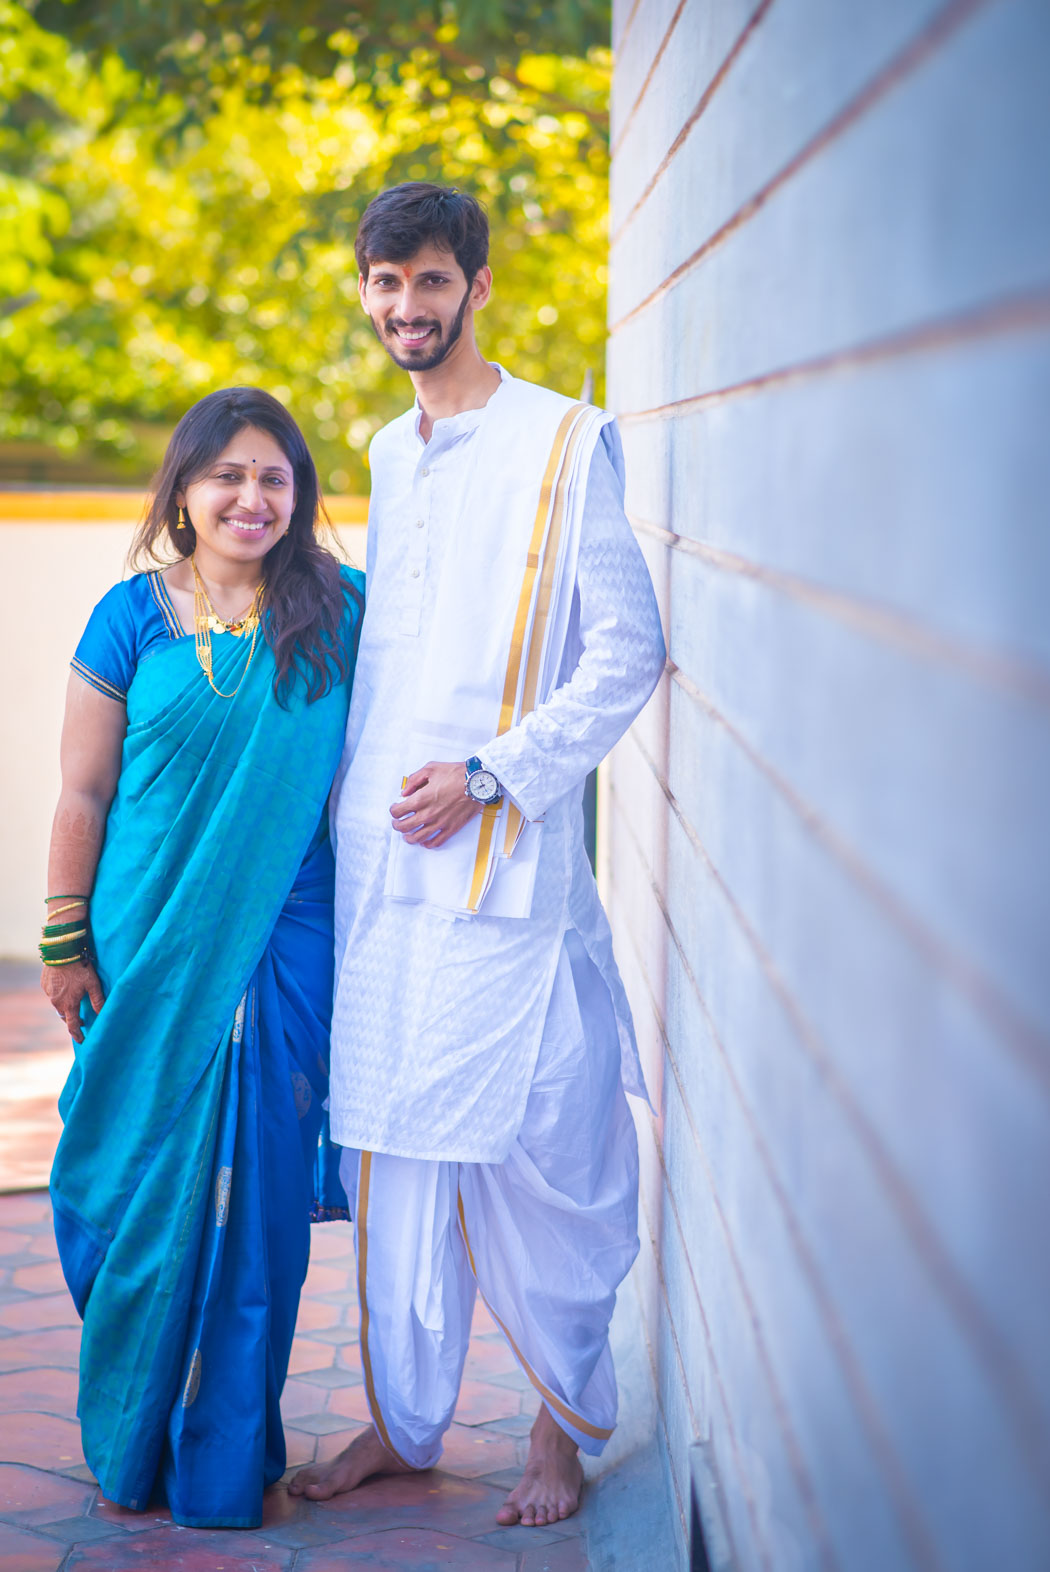 WhatKnot-Candid-Wedding-Photography-Mumbai-Bangalore-226